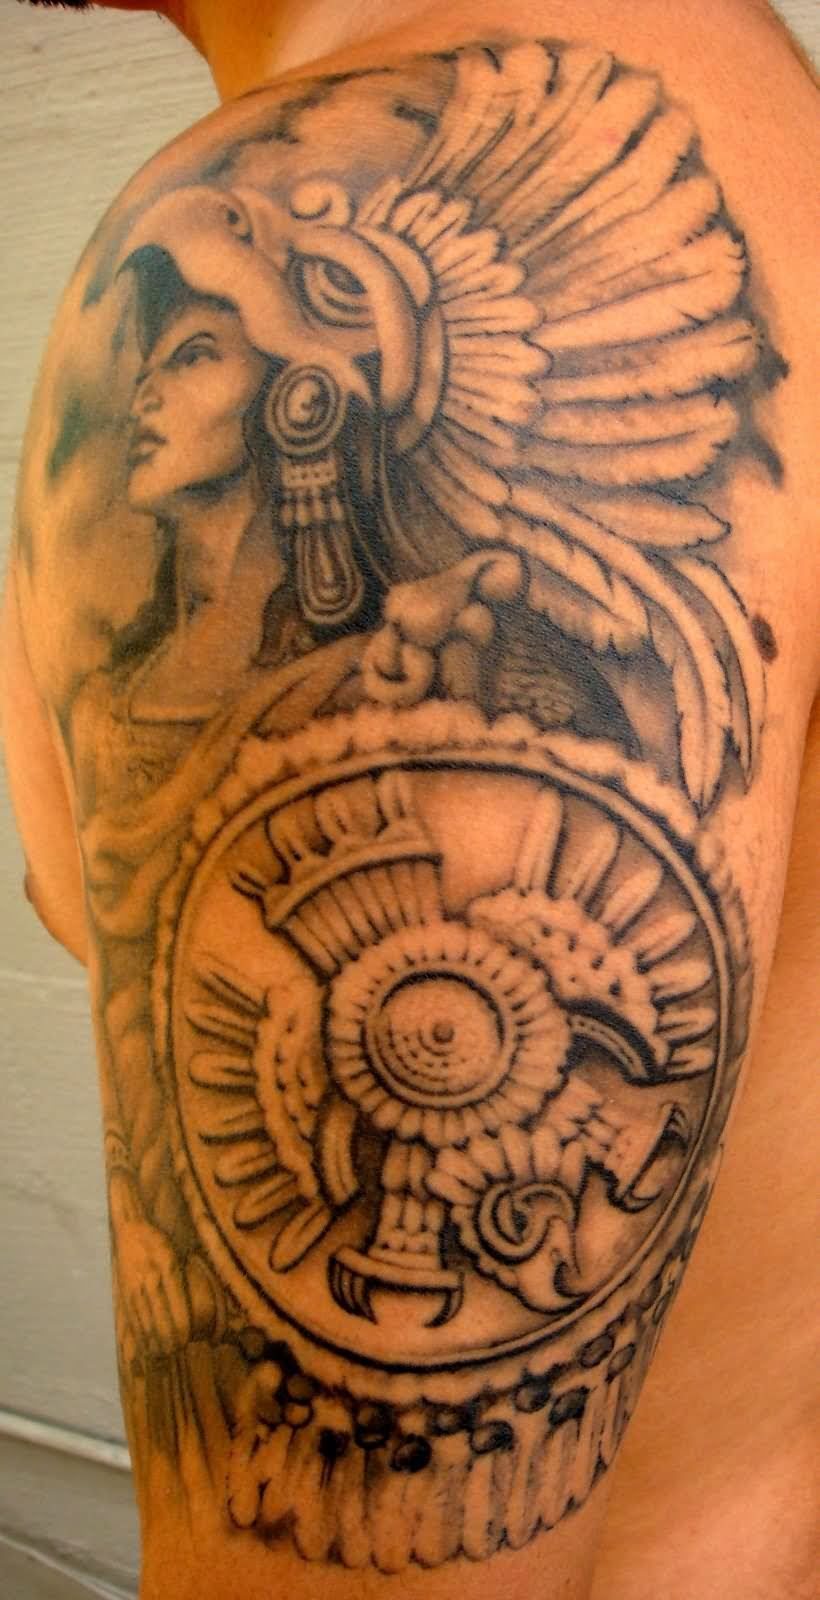 Mexican style tattoos mexican tattoo aztec and tattoo for Mexican style tattoos